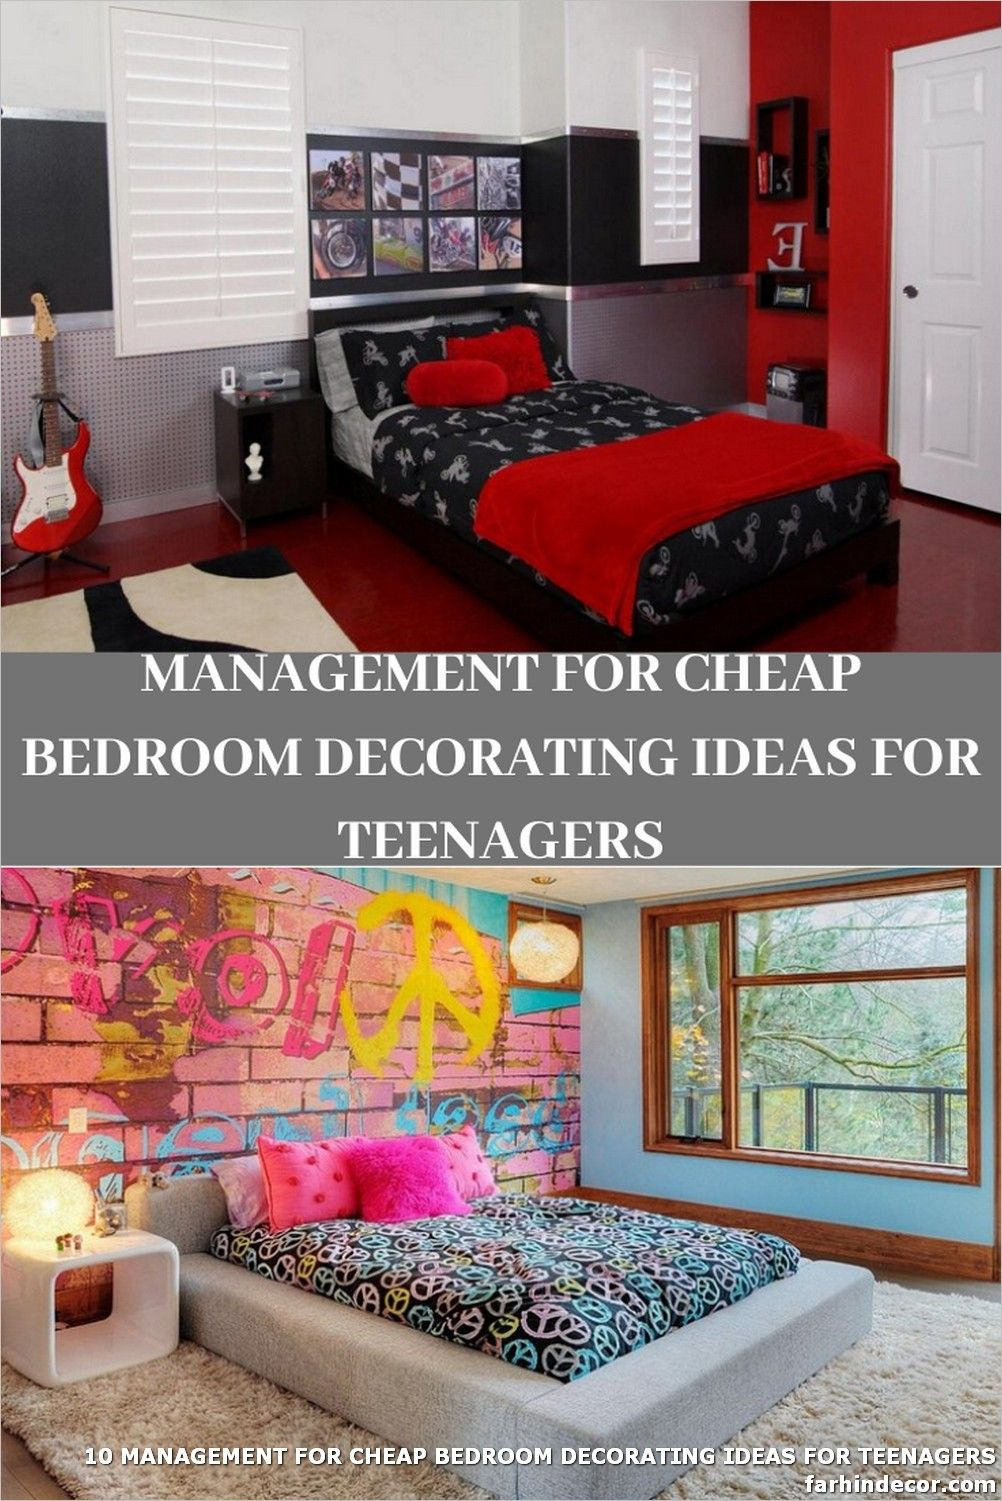 10 Management For Cheap Bedroom Decorating Ideas For Teenagers Bedroom Decor Decor Bedroom